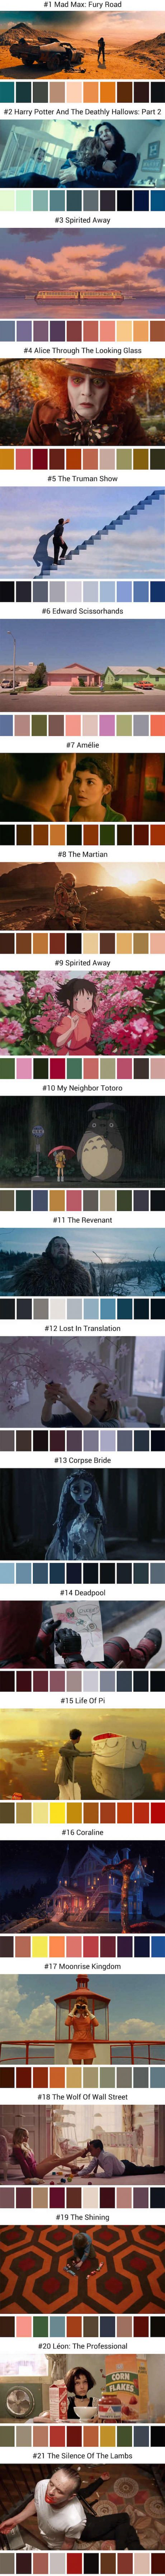 Color Palettes Compiled From Famous Movie Scenes (By cinemapalettes)